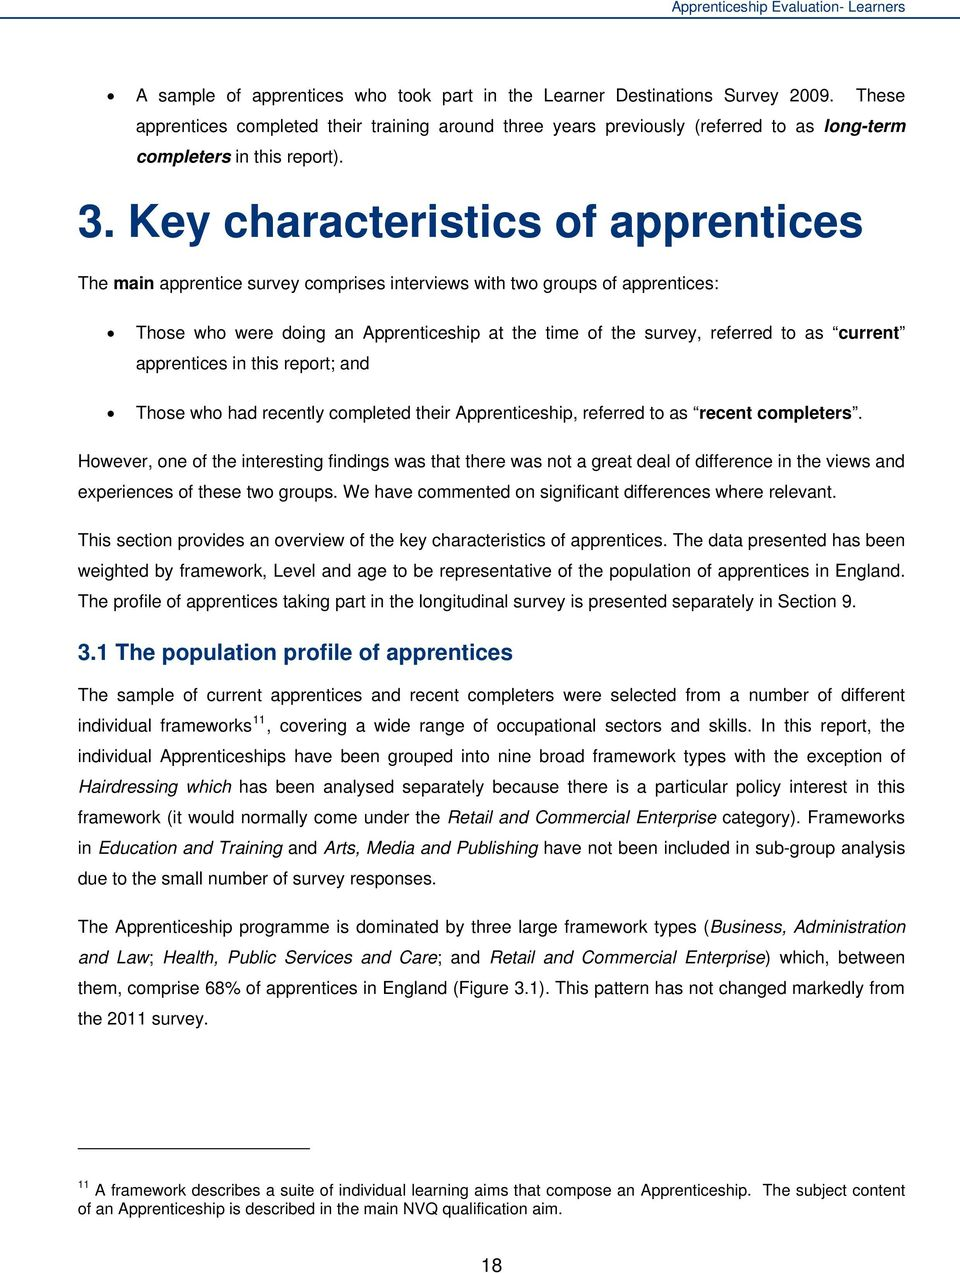 Key characteristics of apprentices The main apprentice survey comprises interviews with two groups of apprentices: Those who were doing an Apprenticeship at the time of the survey, referred to as